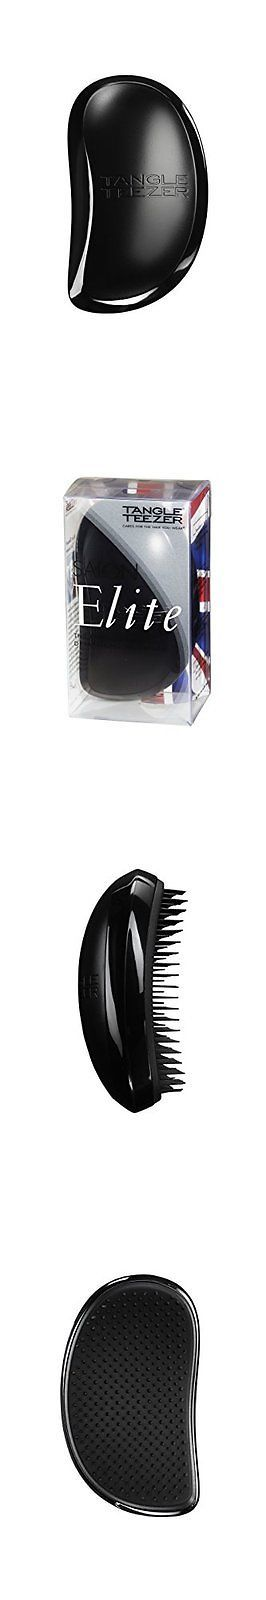 Brushes and Combs: Salon Elite Hair Brush Beauty Care Head Health Life Home Craft Panther Black -> BUY IT NOW ONLY: $71.84 on eBay!